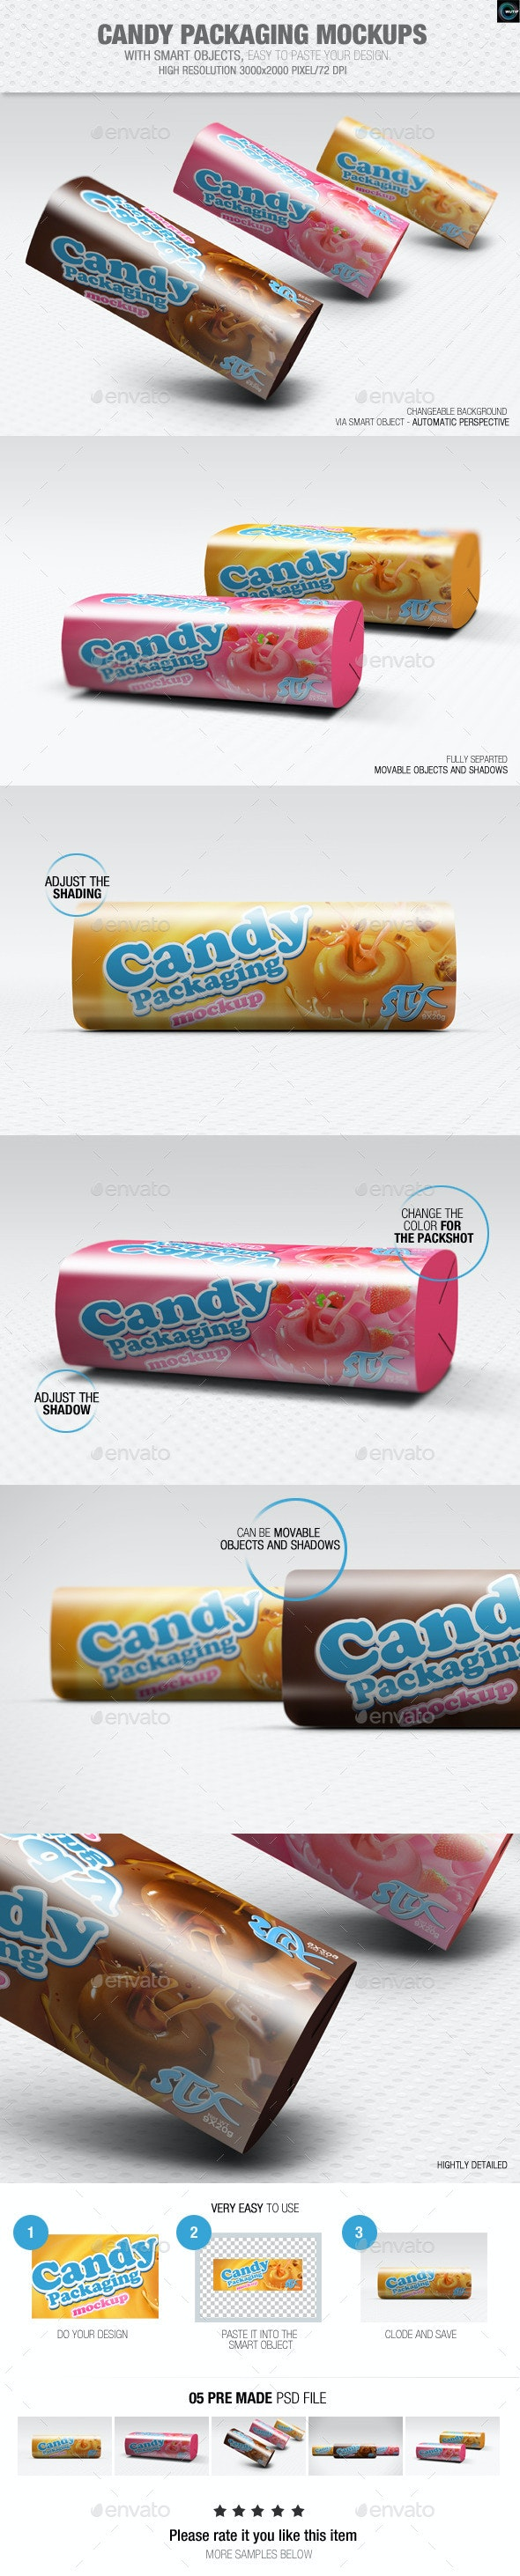 Candy Packaging Mockups - Packaging Product Mock-Ups